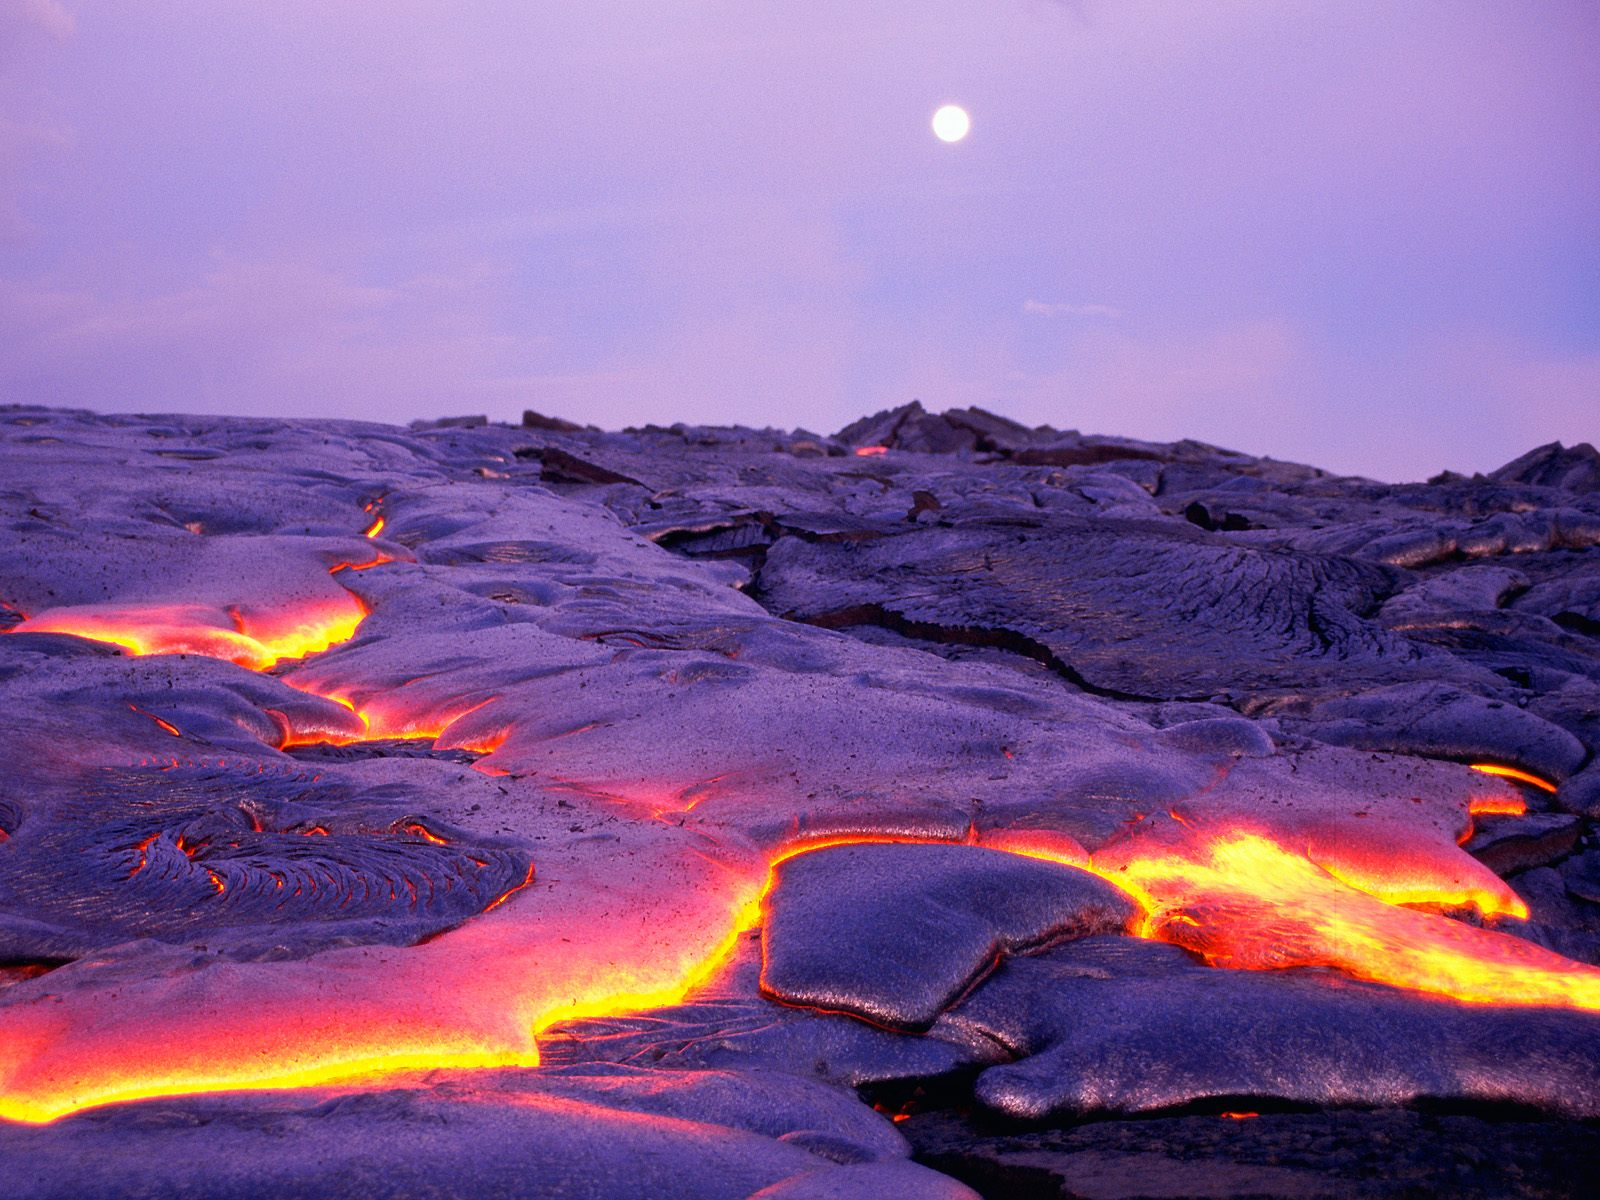 hawaii volcanoes national park The hawaiian islands were settled by polynesian migration beginning around the year 300 these people navigated the pacific ocean in large, double-hulled canoes and.